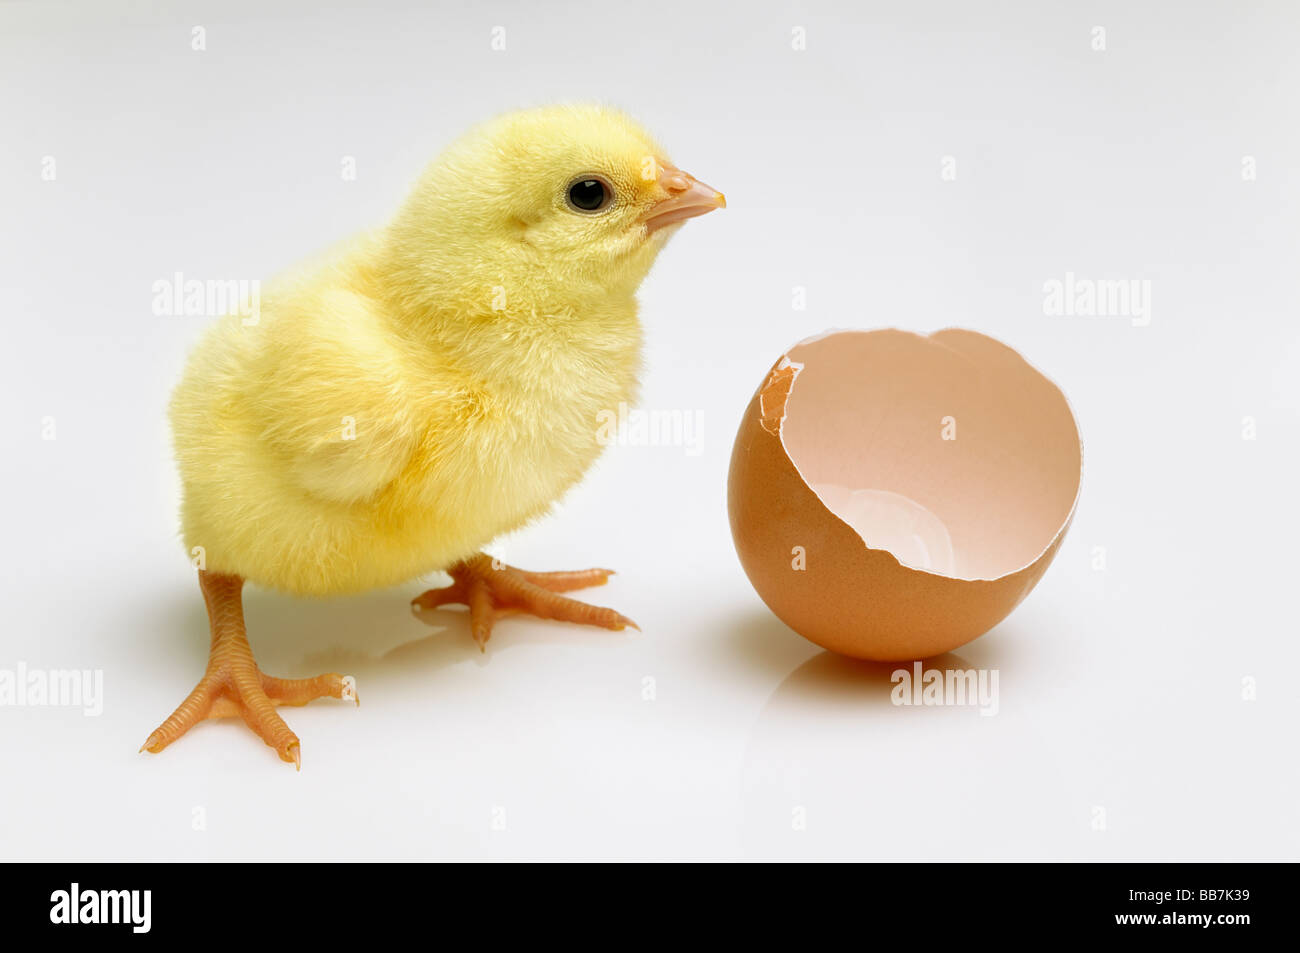 Newly Hatched Chick Next to a Broken Eggshell - Stock Image